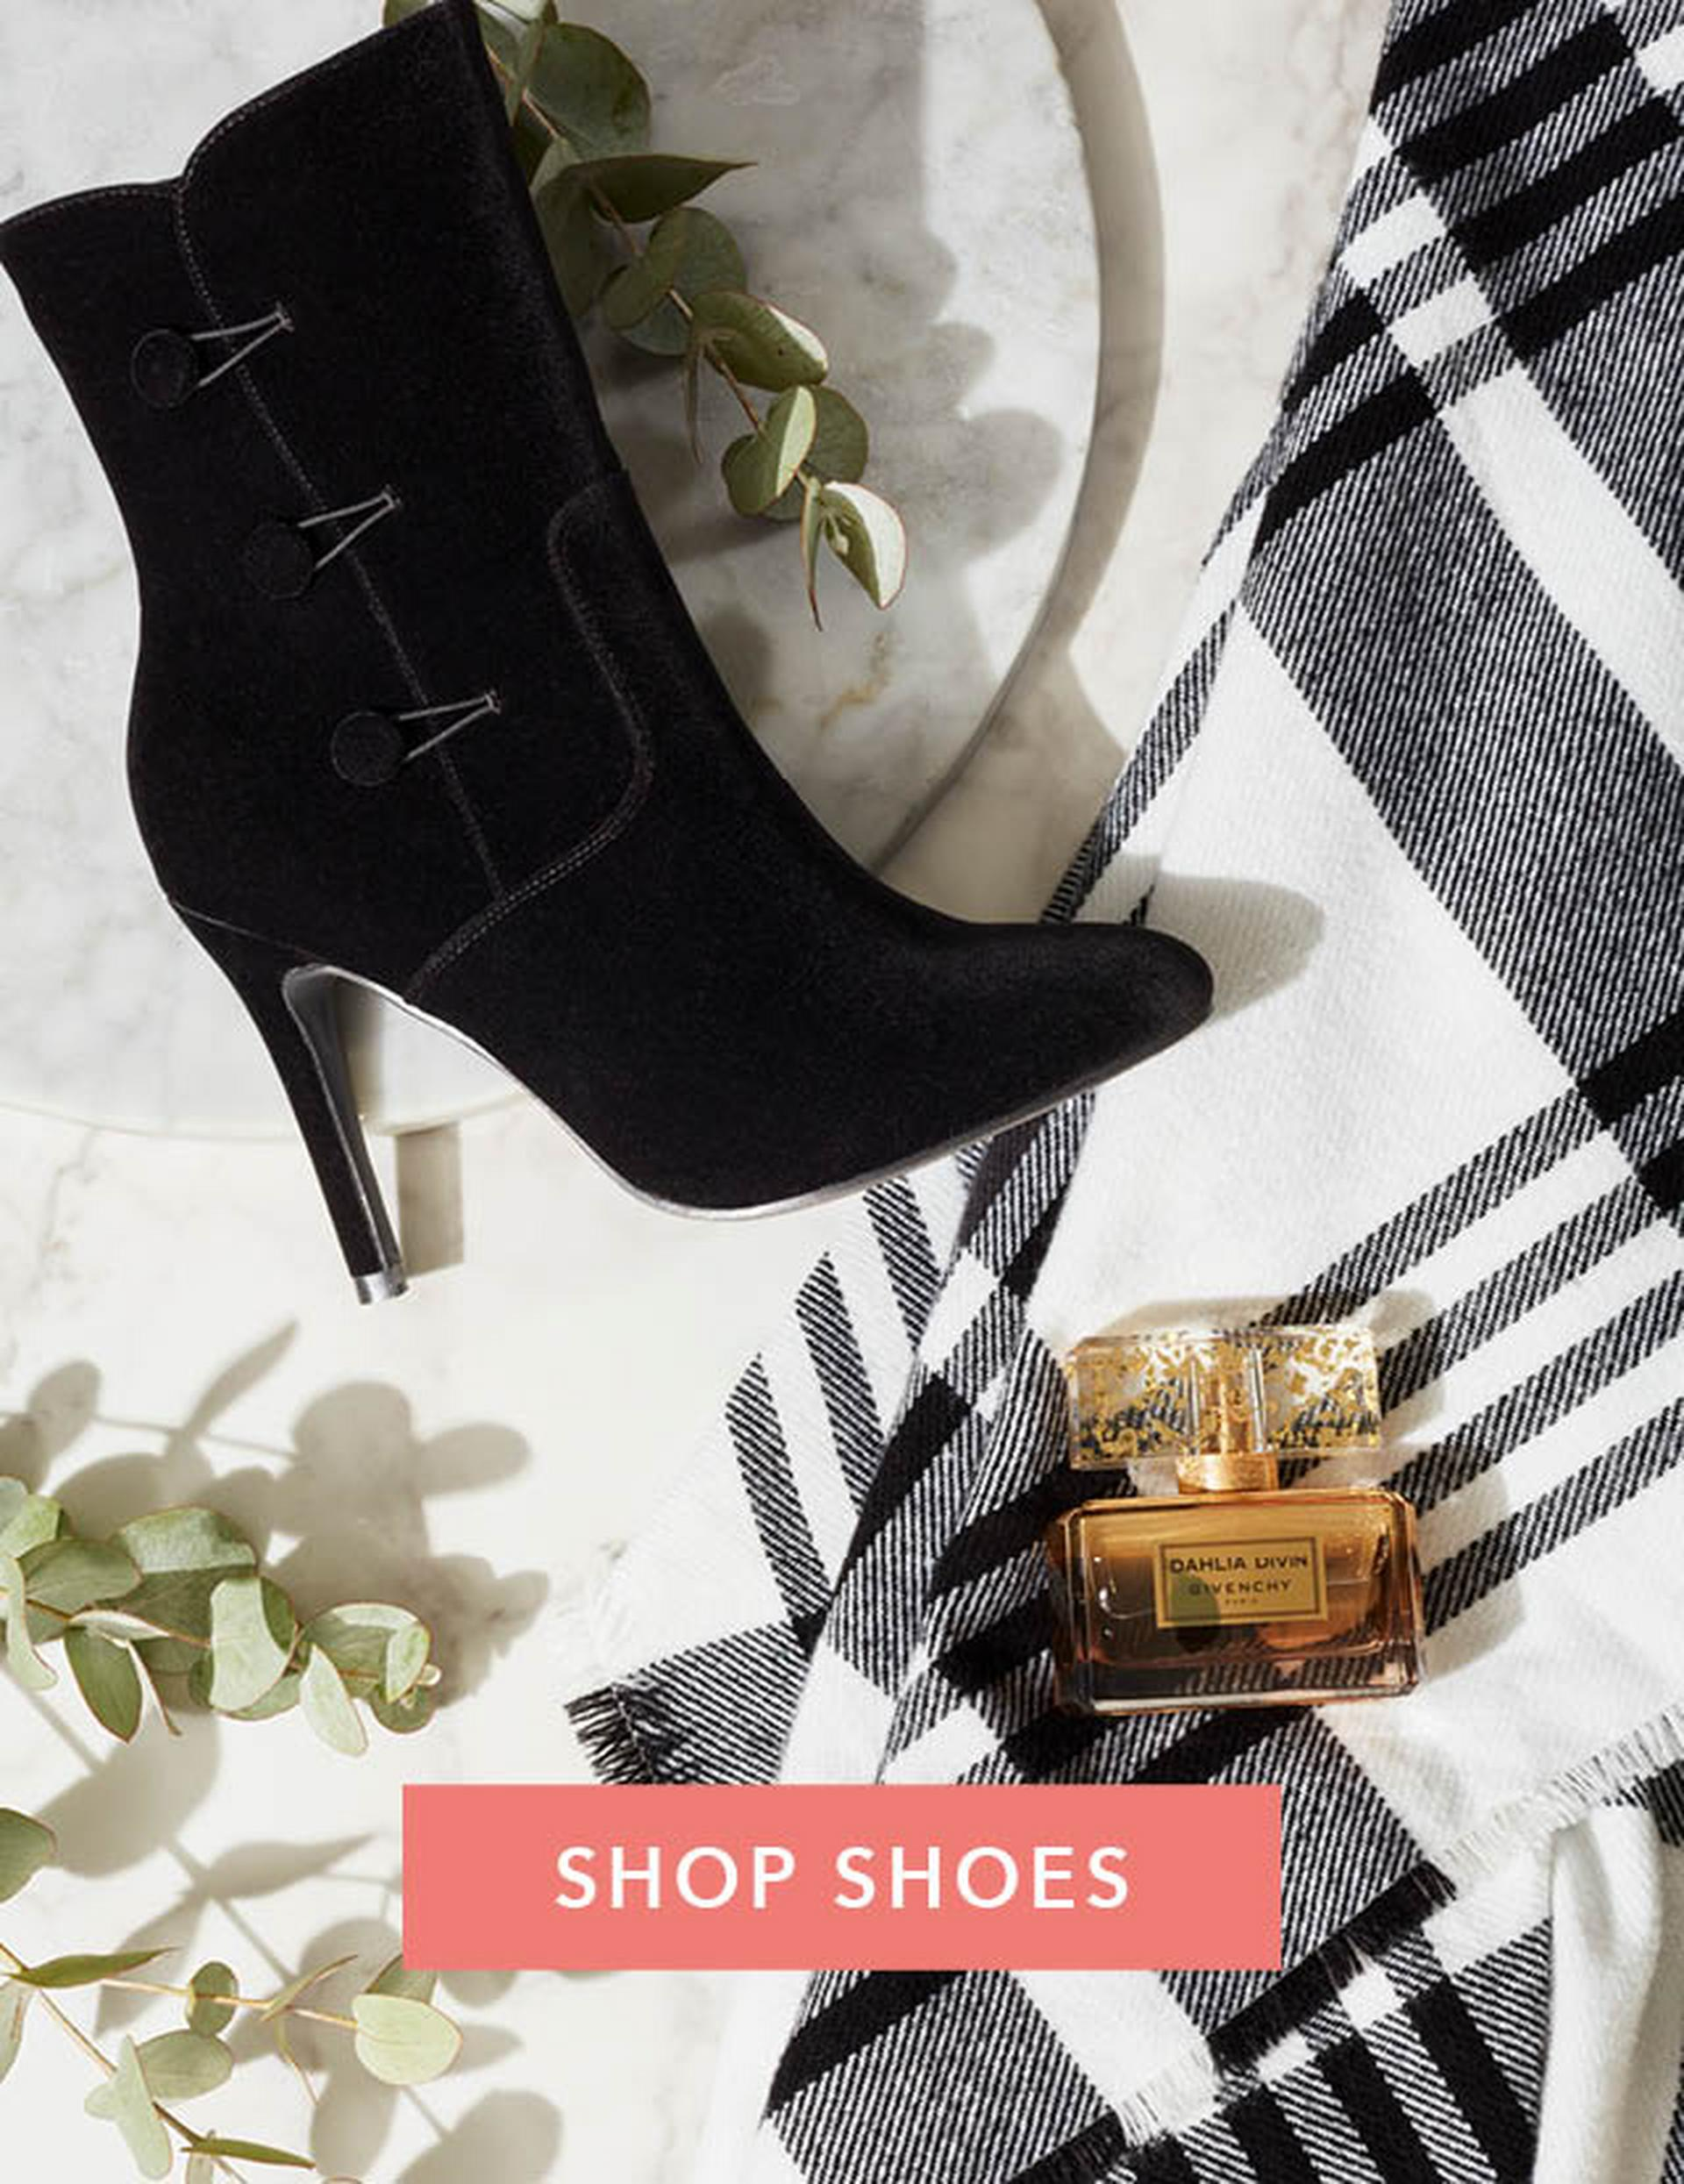 Winter Shop Womens Shoes - Desktop